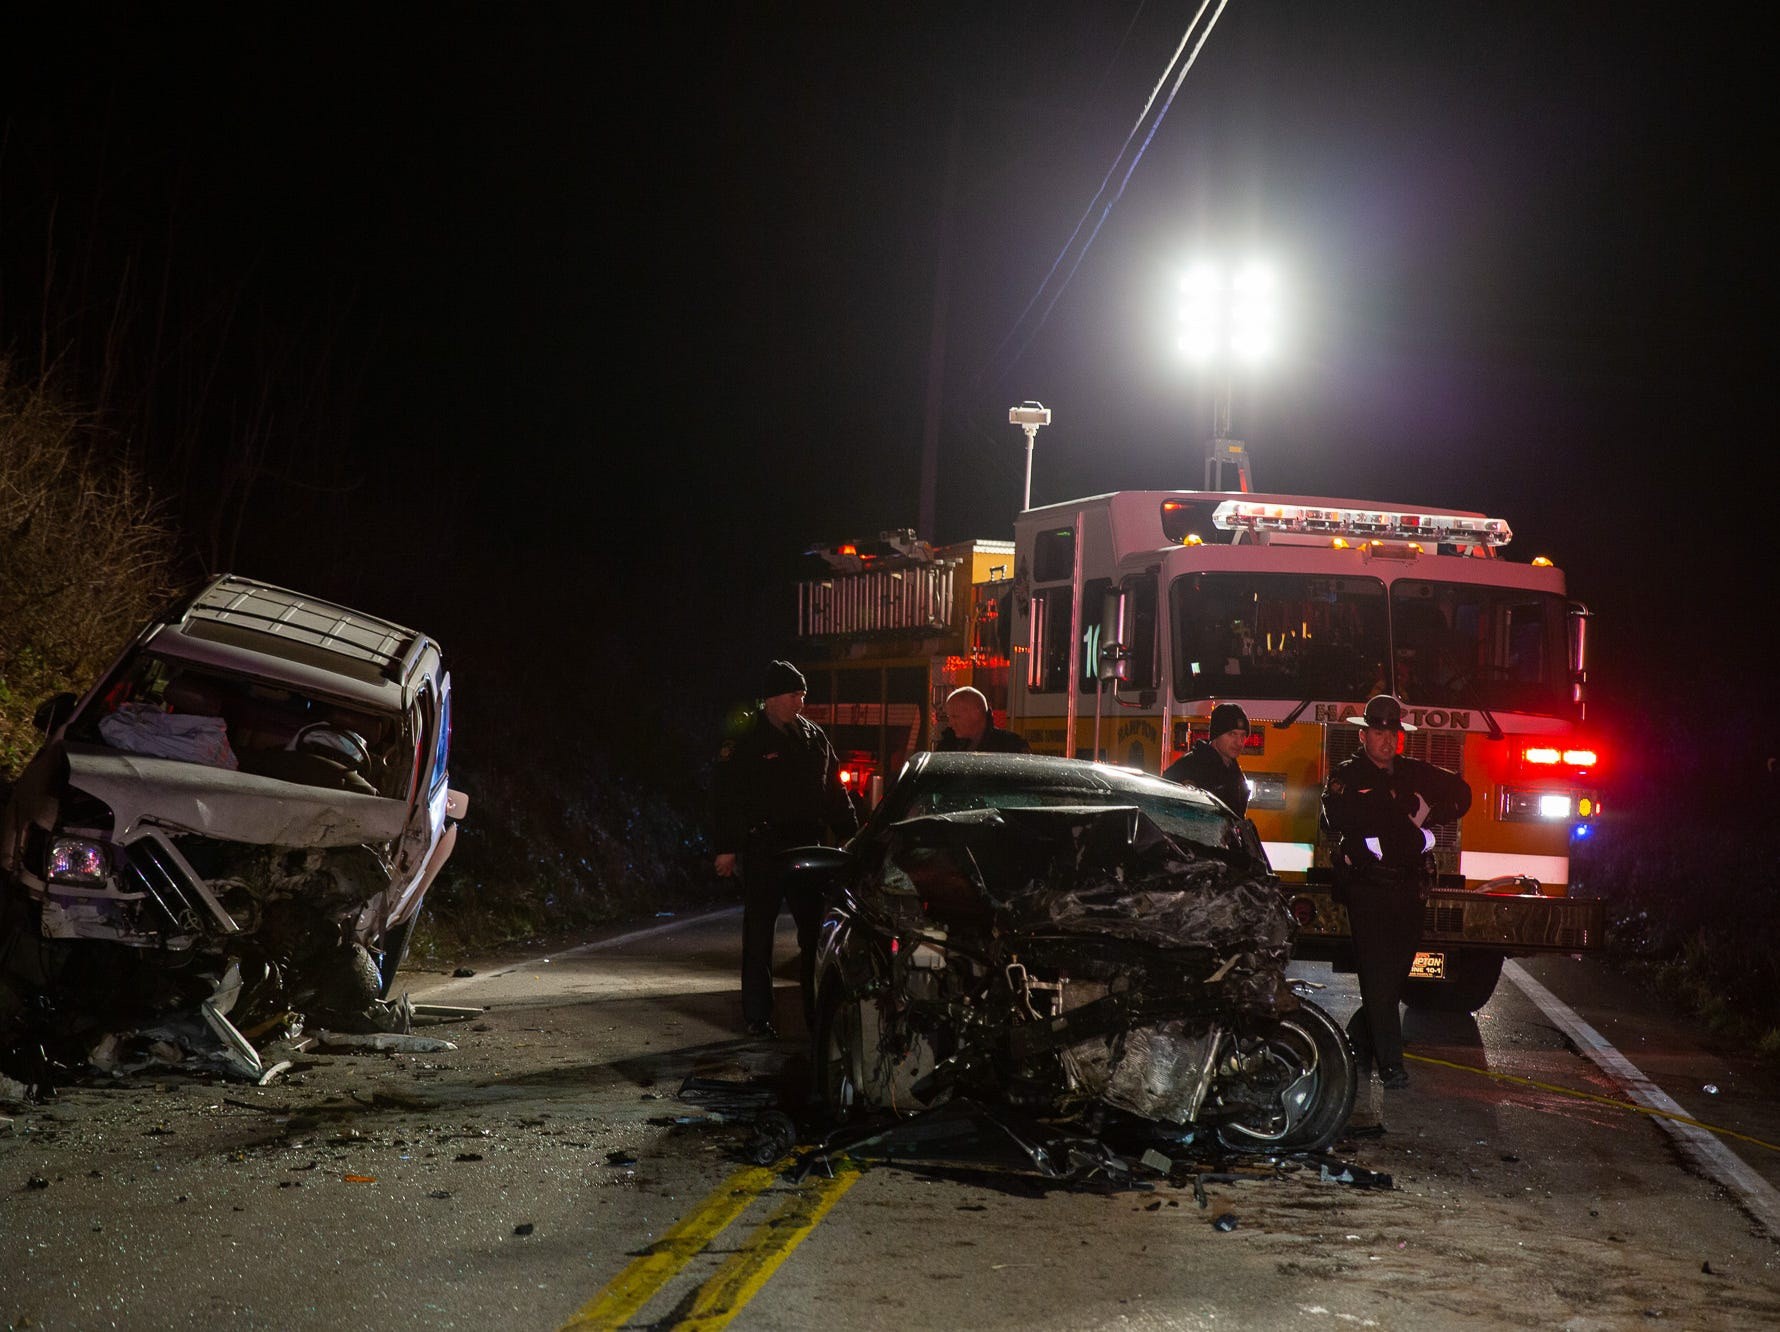 The Pennsylvania State Police investigate the scene of a crash on the 2200 block of East Berlin Road, Monday, Dec. 24, 2018, in Reading Township.